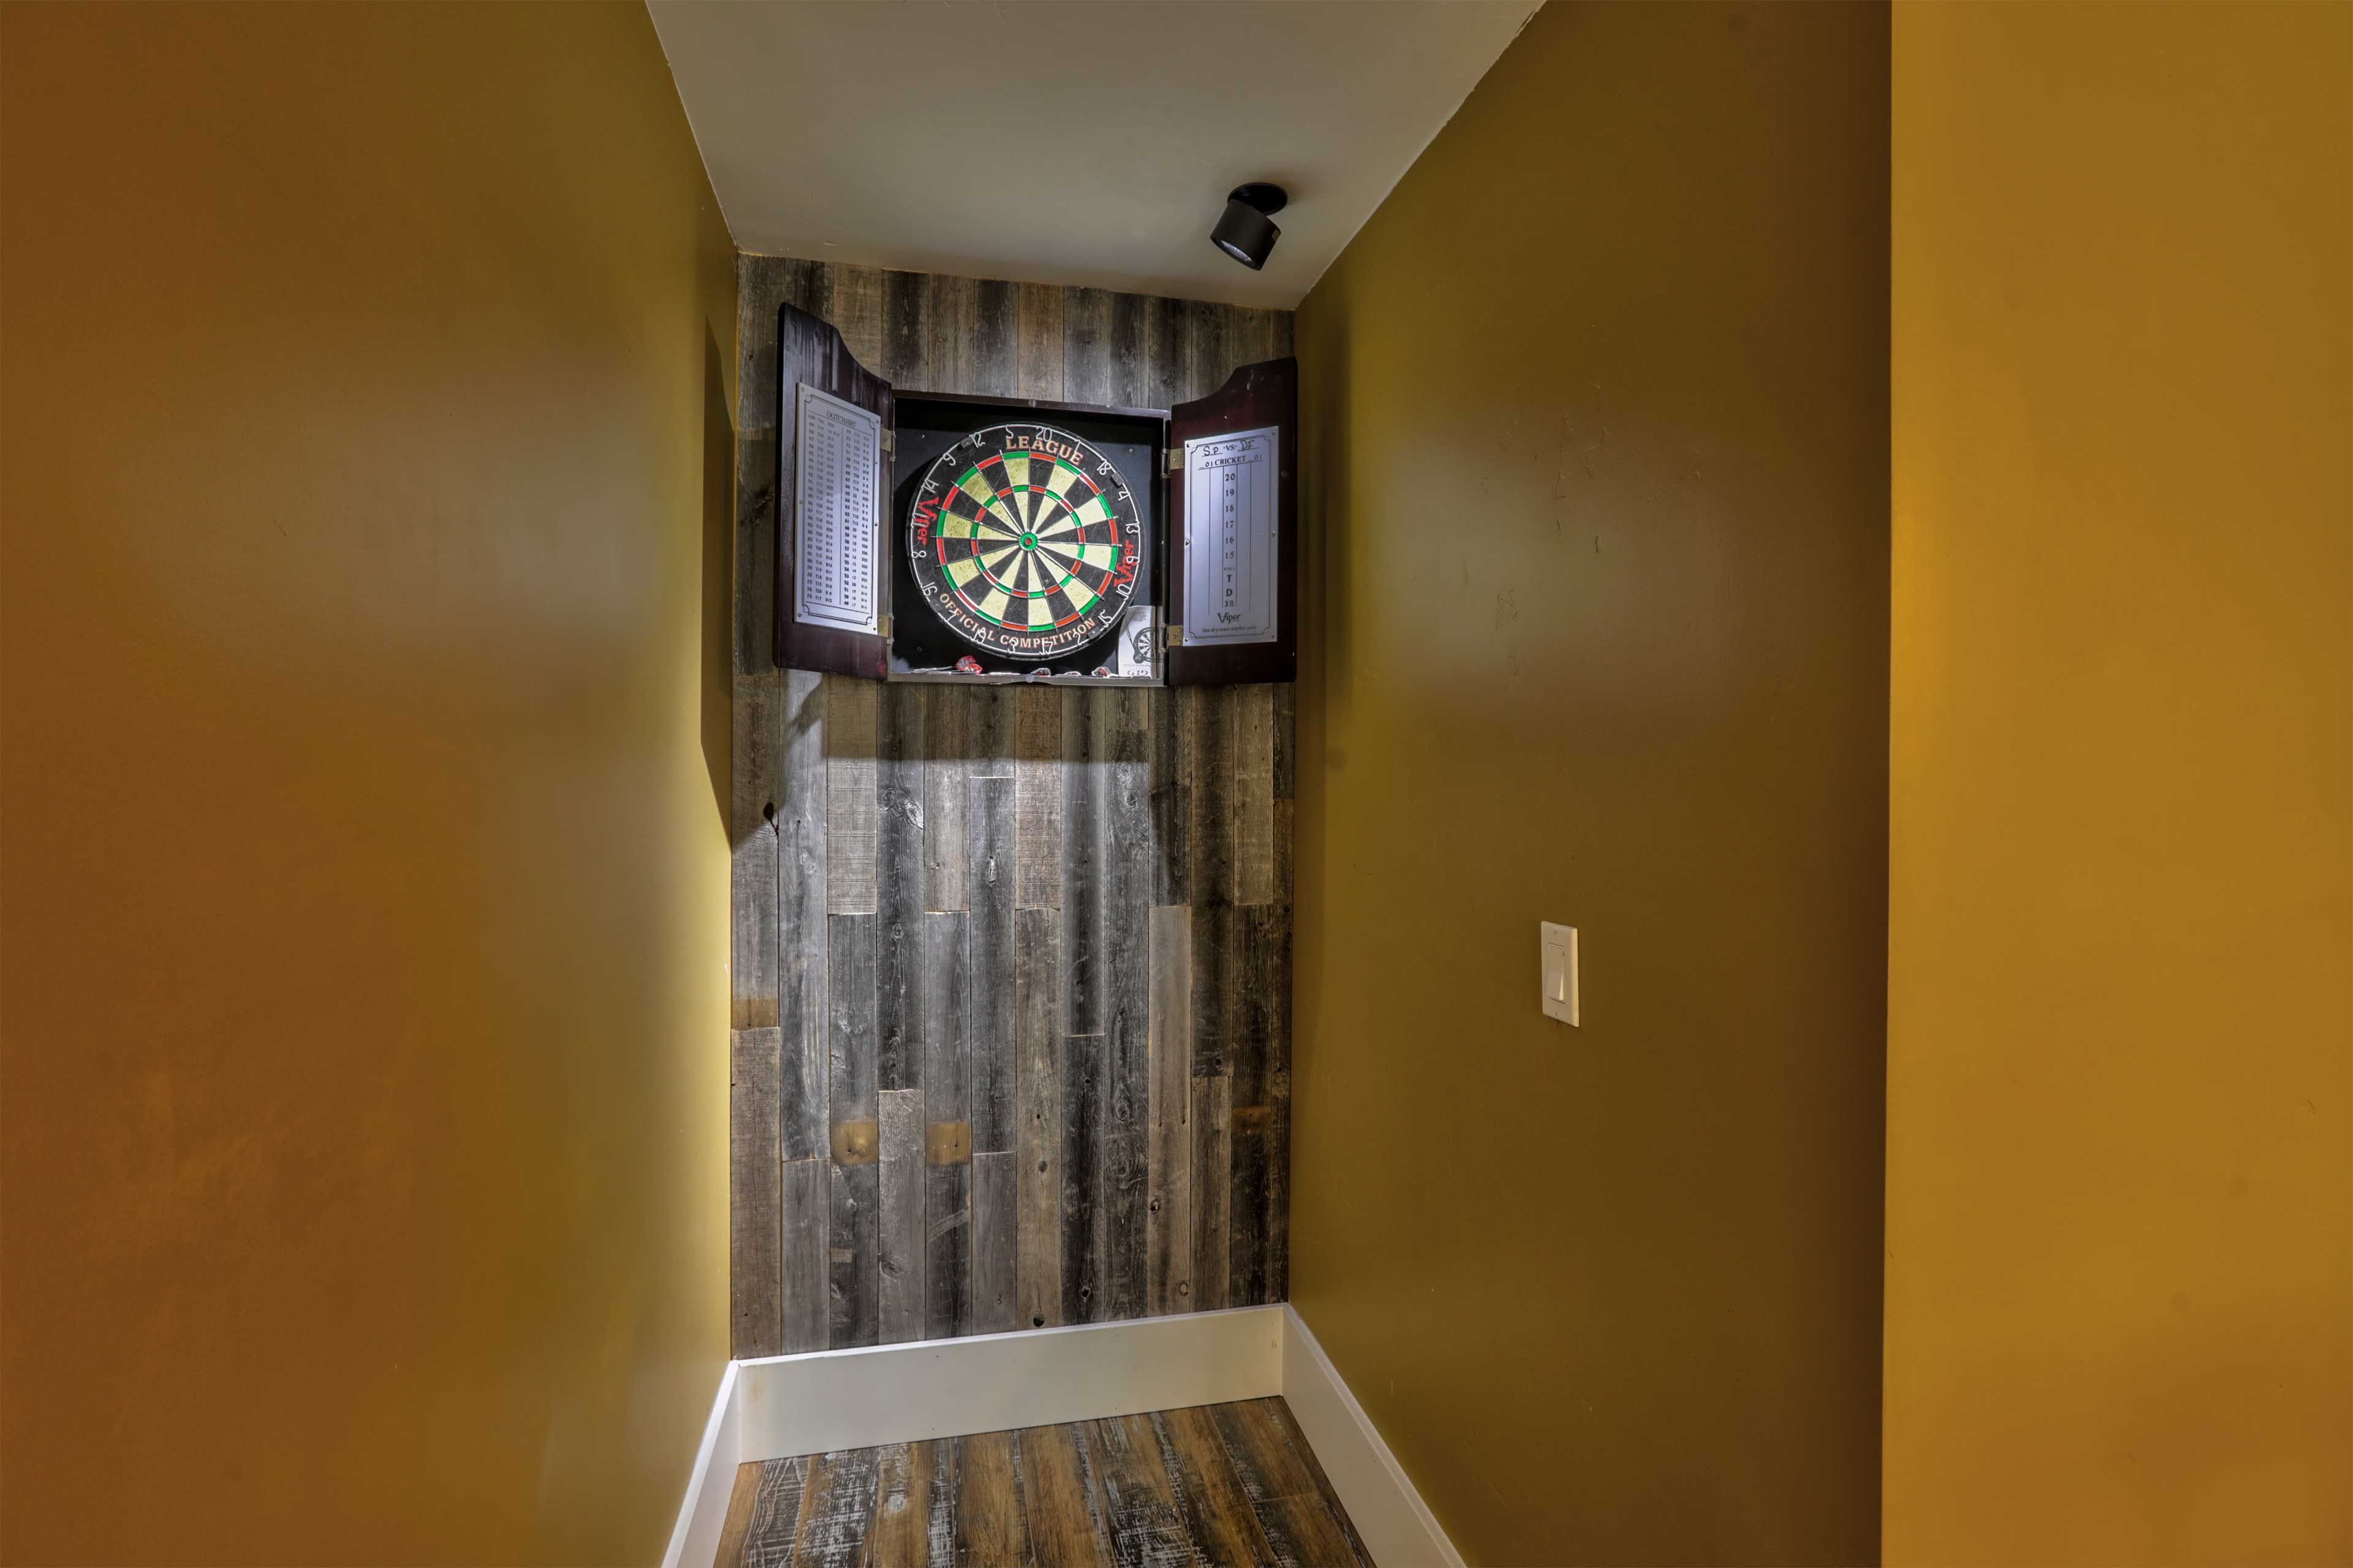 See if you can hit a bulls-eye on the dart board!